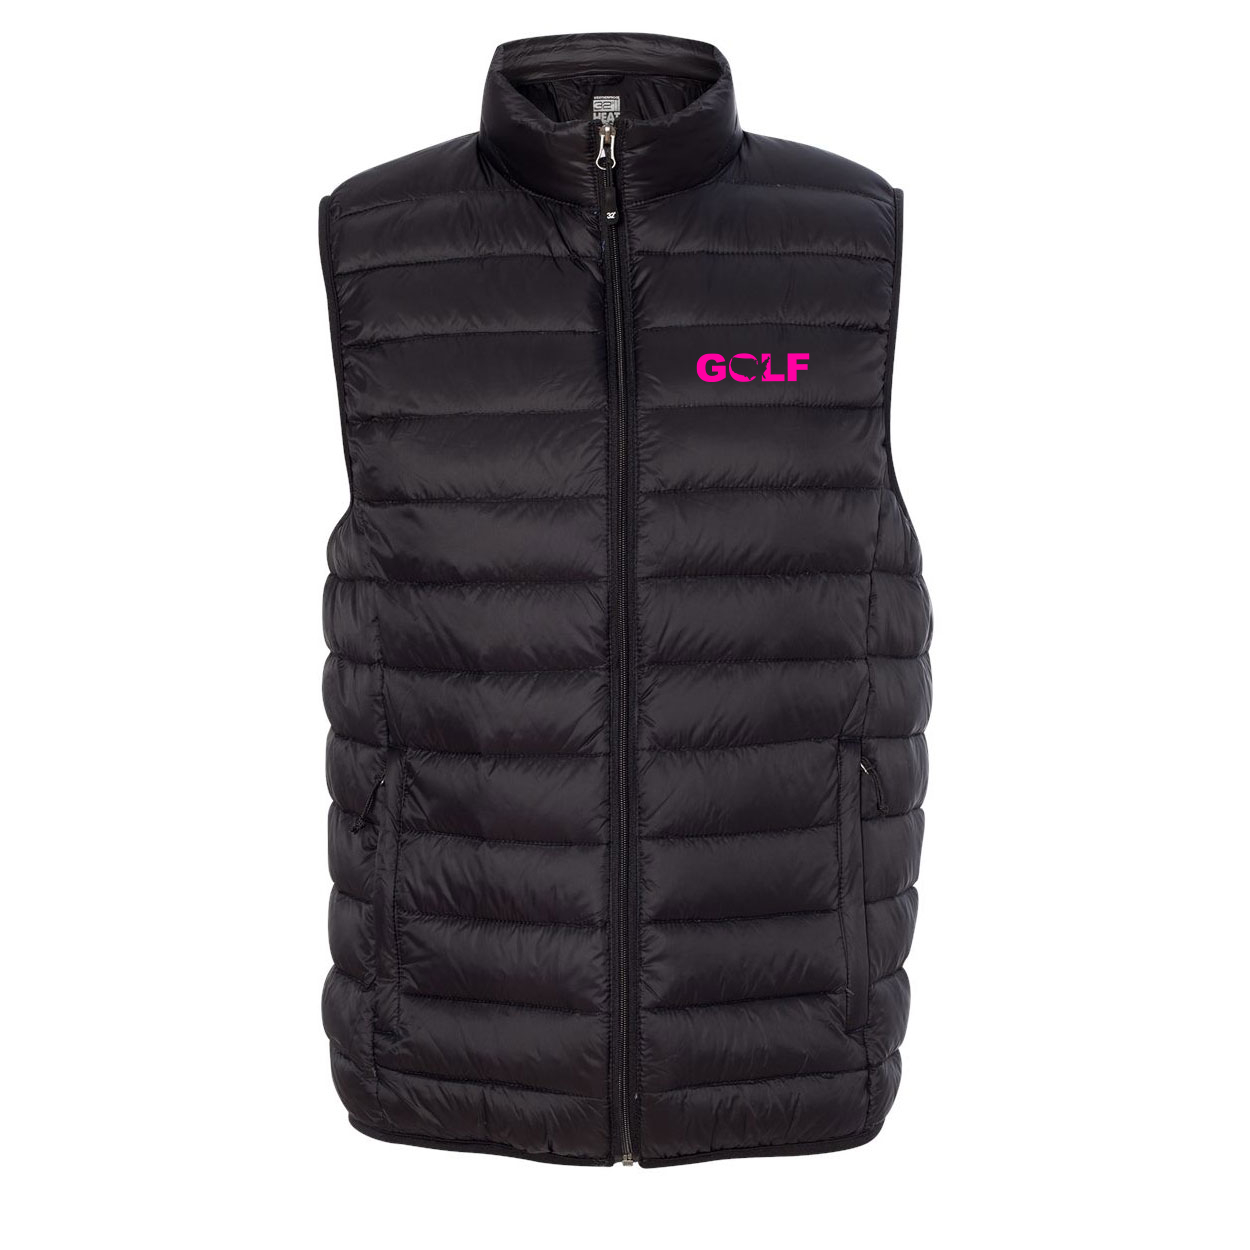 Golf United States Night Out Puff Down Jacket Vest Black (Pink Logo)